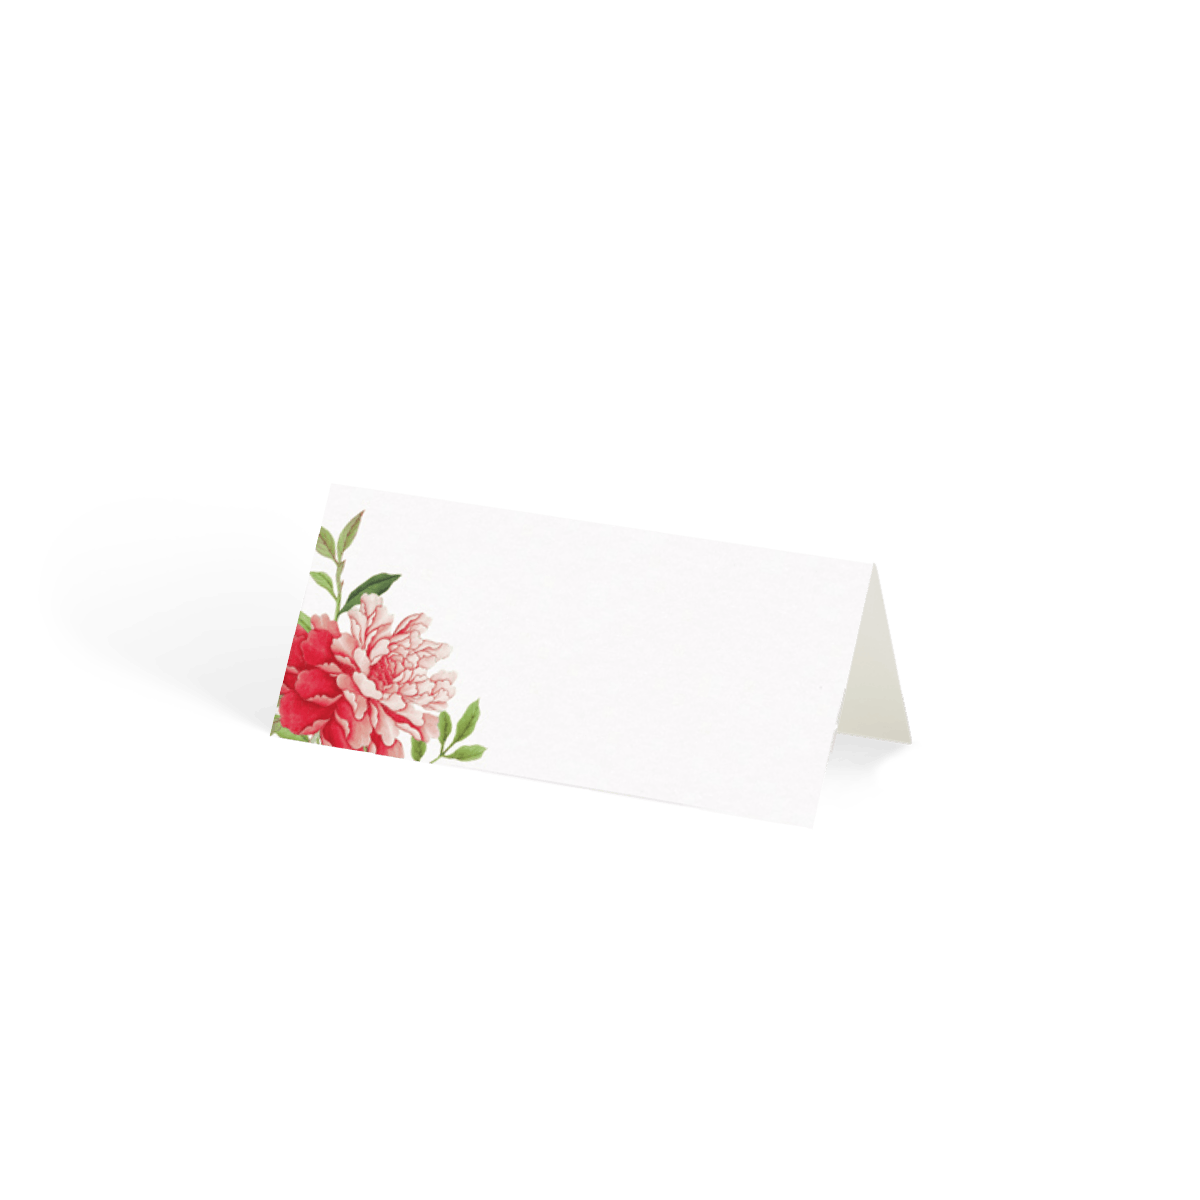 Https%3a%2f%2fwww.papier.com%2fproduct image%2f81555%2f8%2fblooming red peony 19600 front 1561980833.png?ixlib=rb 1.1